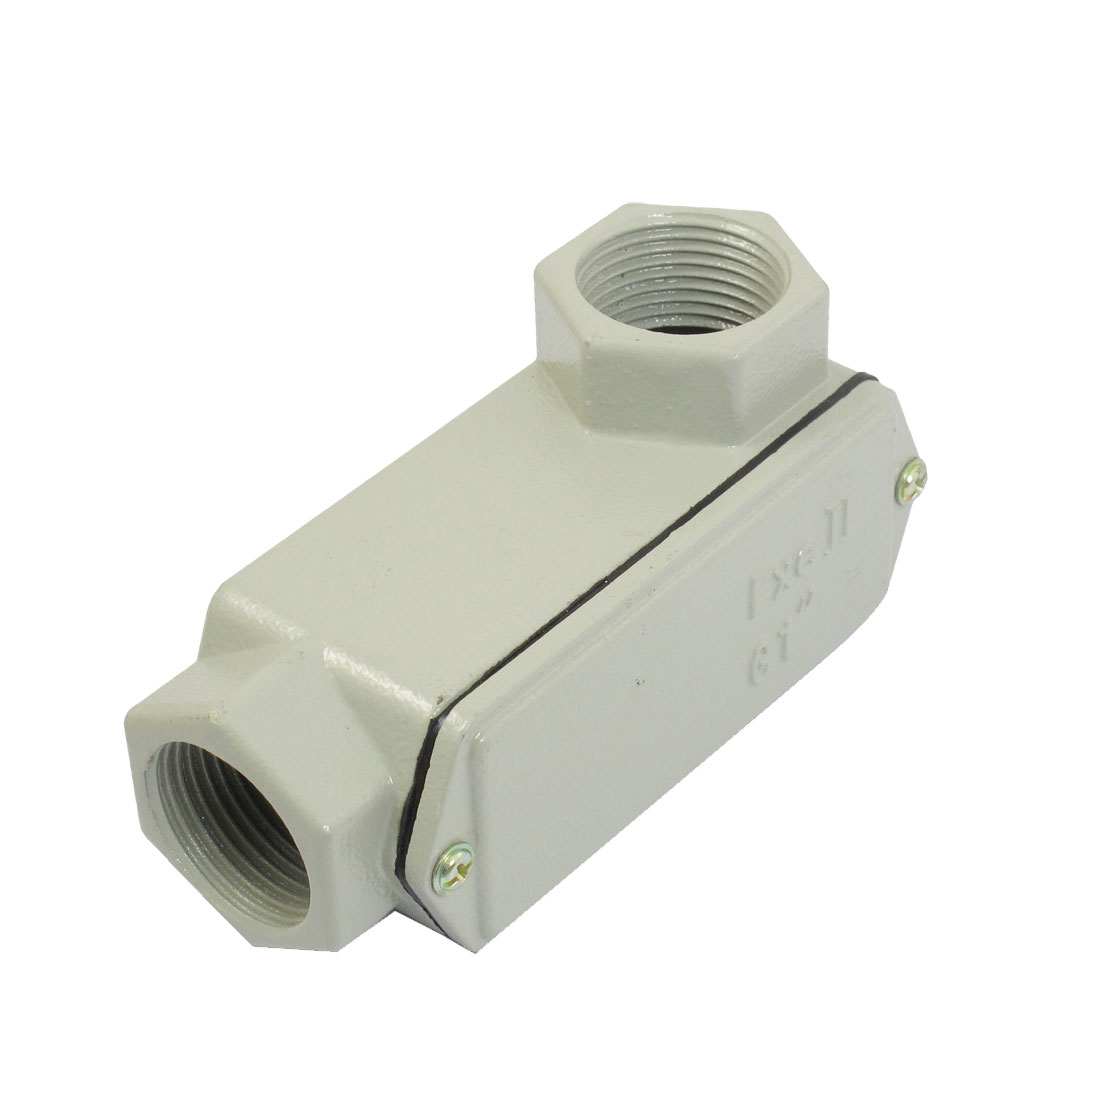 "G1"" 2 Hub Connector Right Angle Metal Shell Explosion-proof Conduit Box"